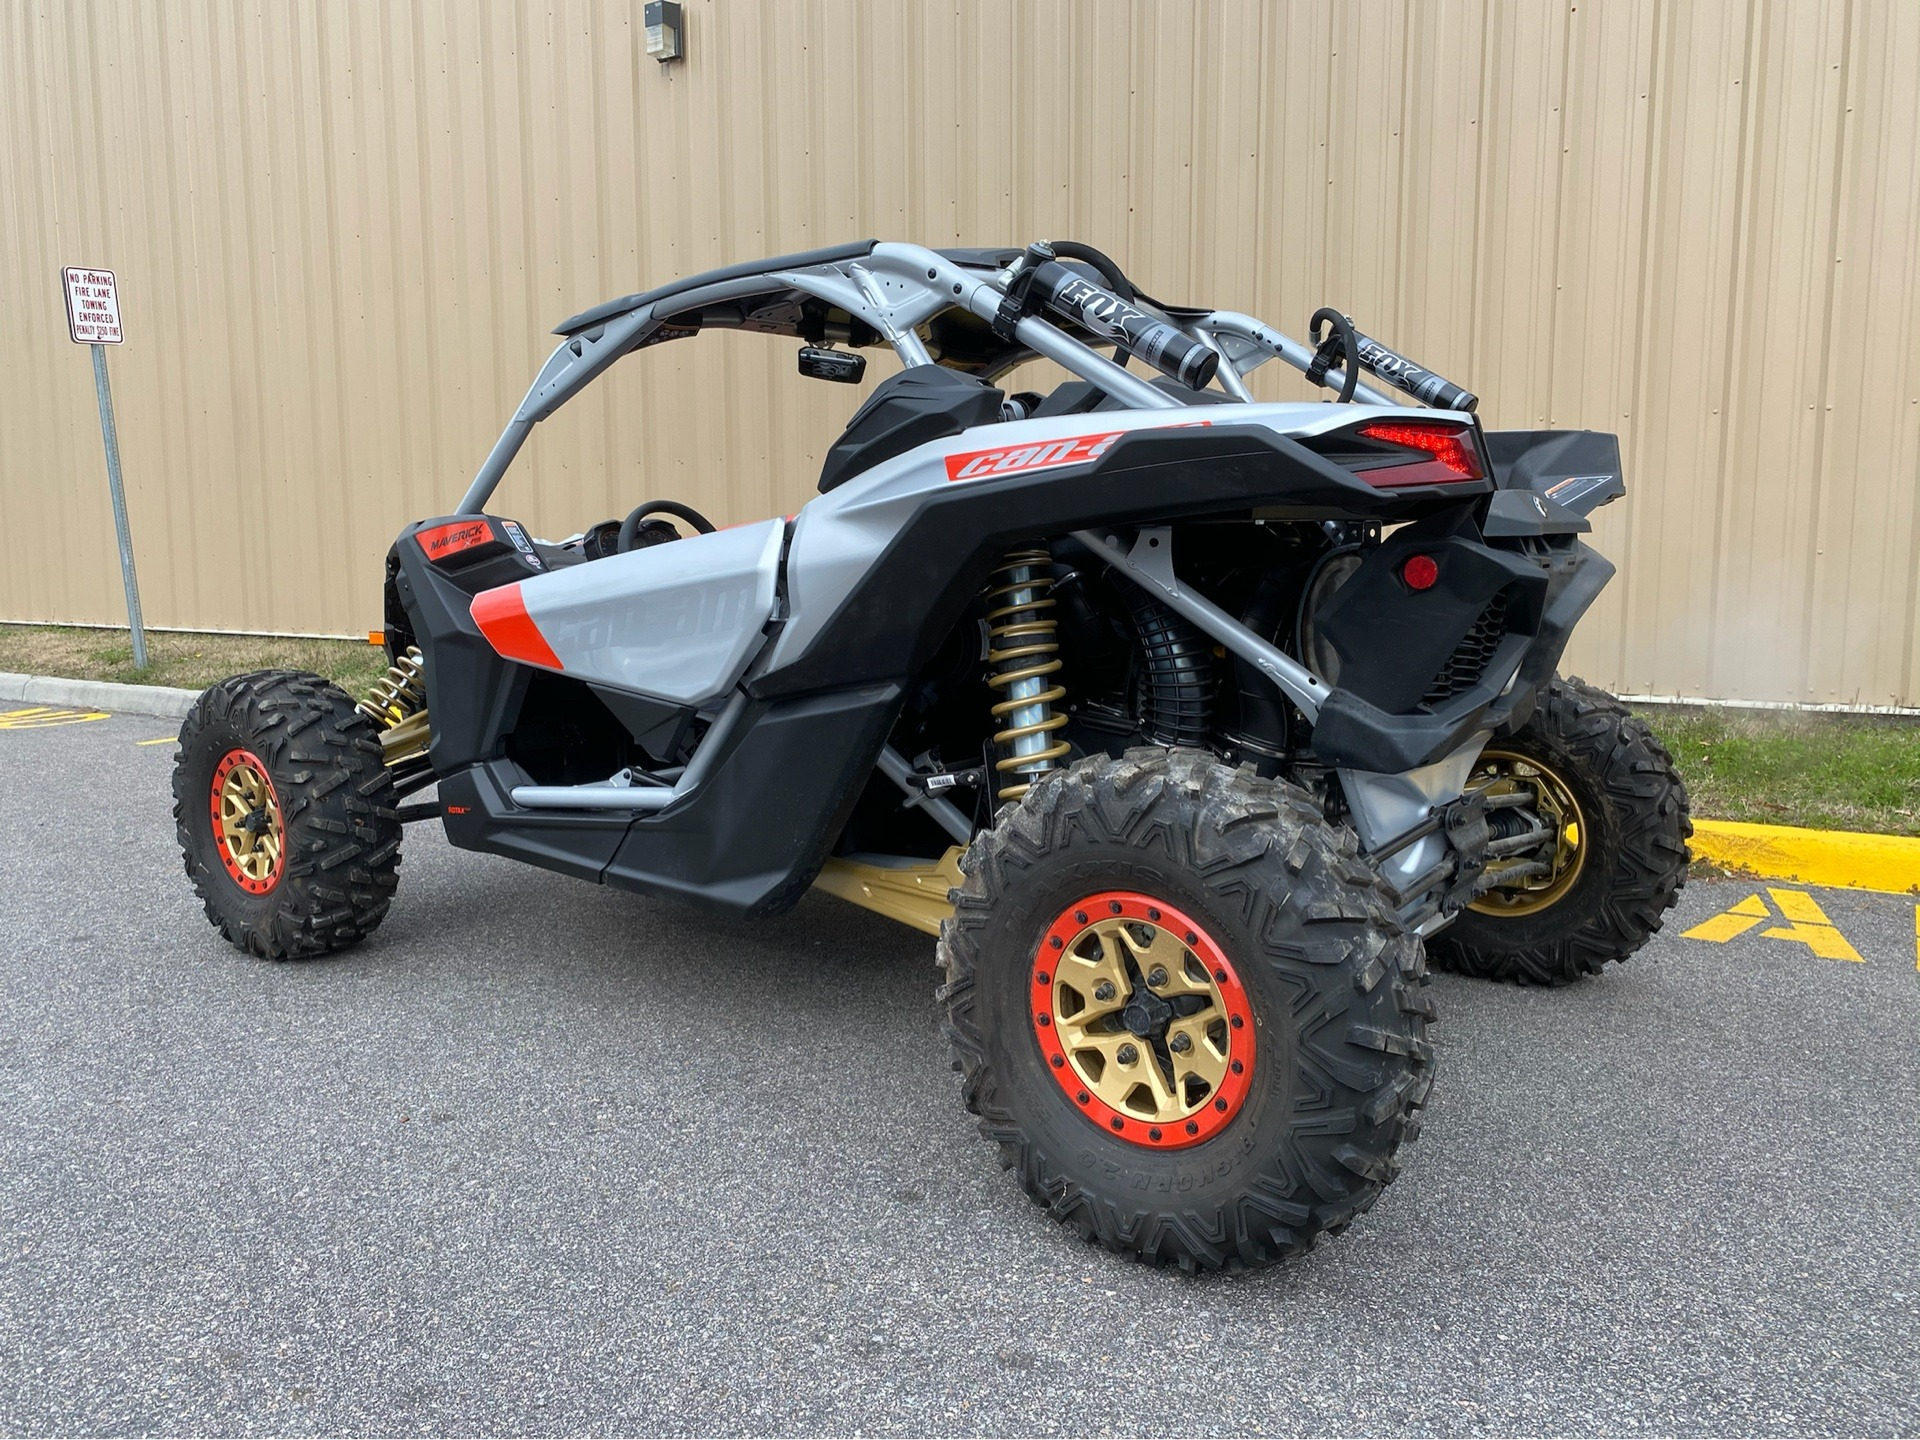 2019 Can-Am Maverick X3 X rs Turbo R in Chesapeake, Virginia - Photo 3